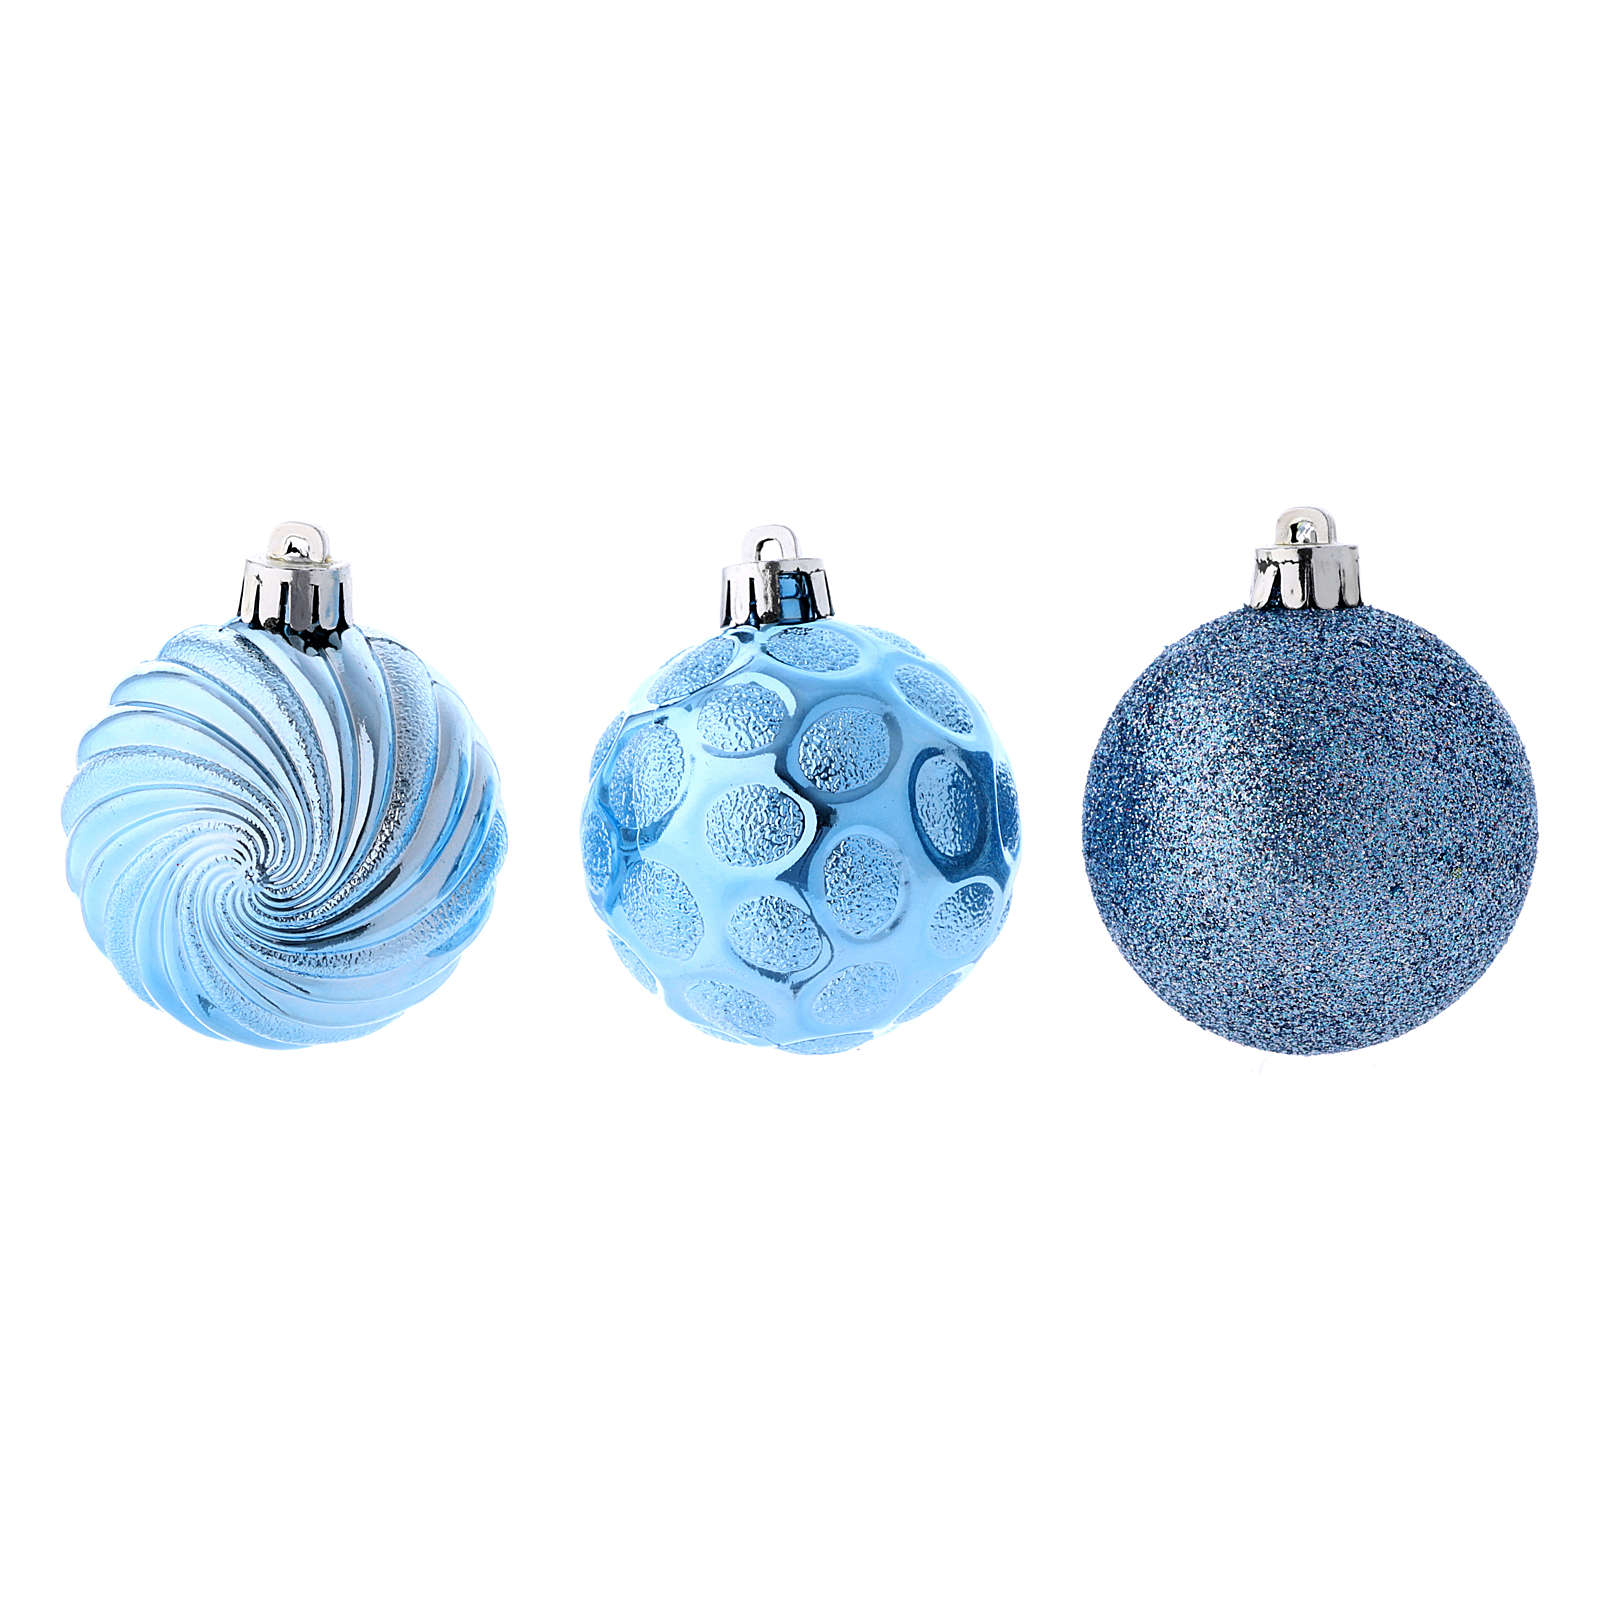 Christmas bauble 60 mm sky blue 4